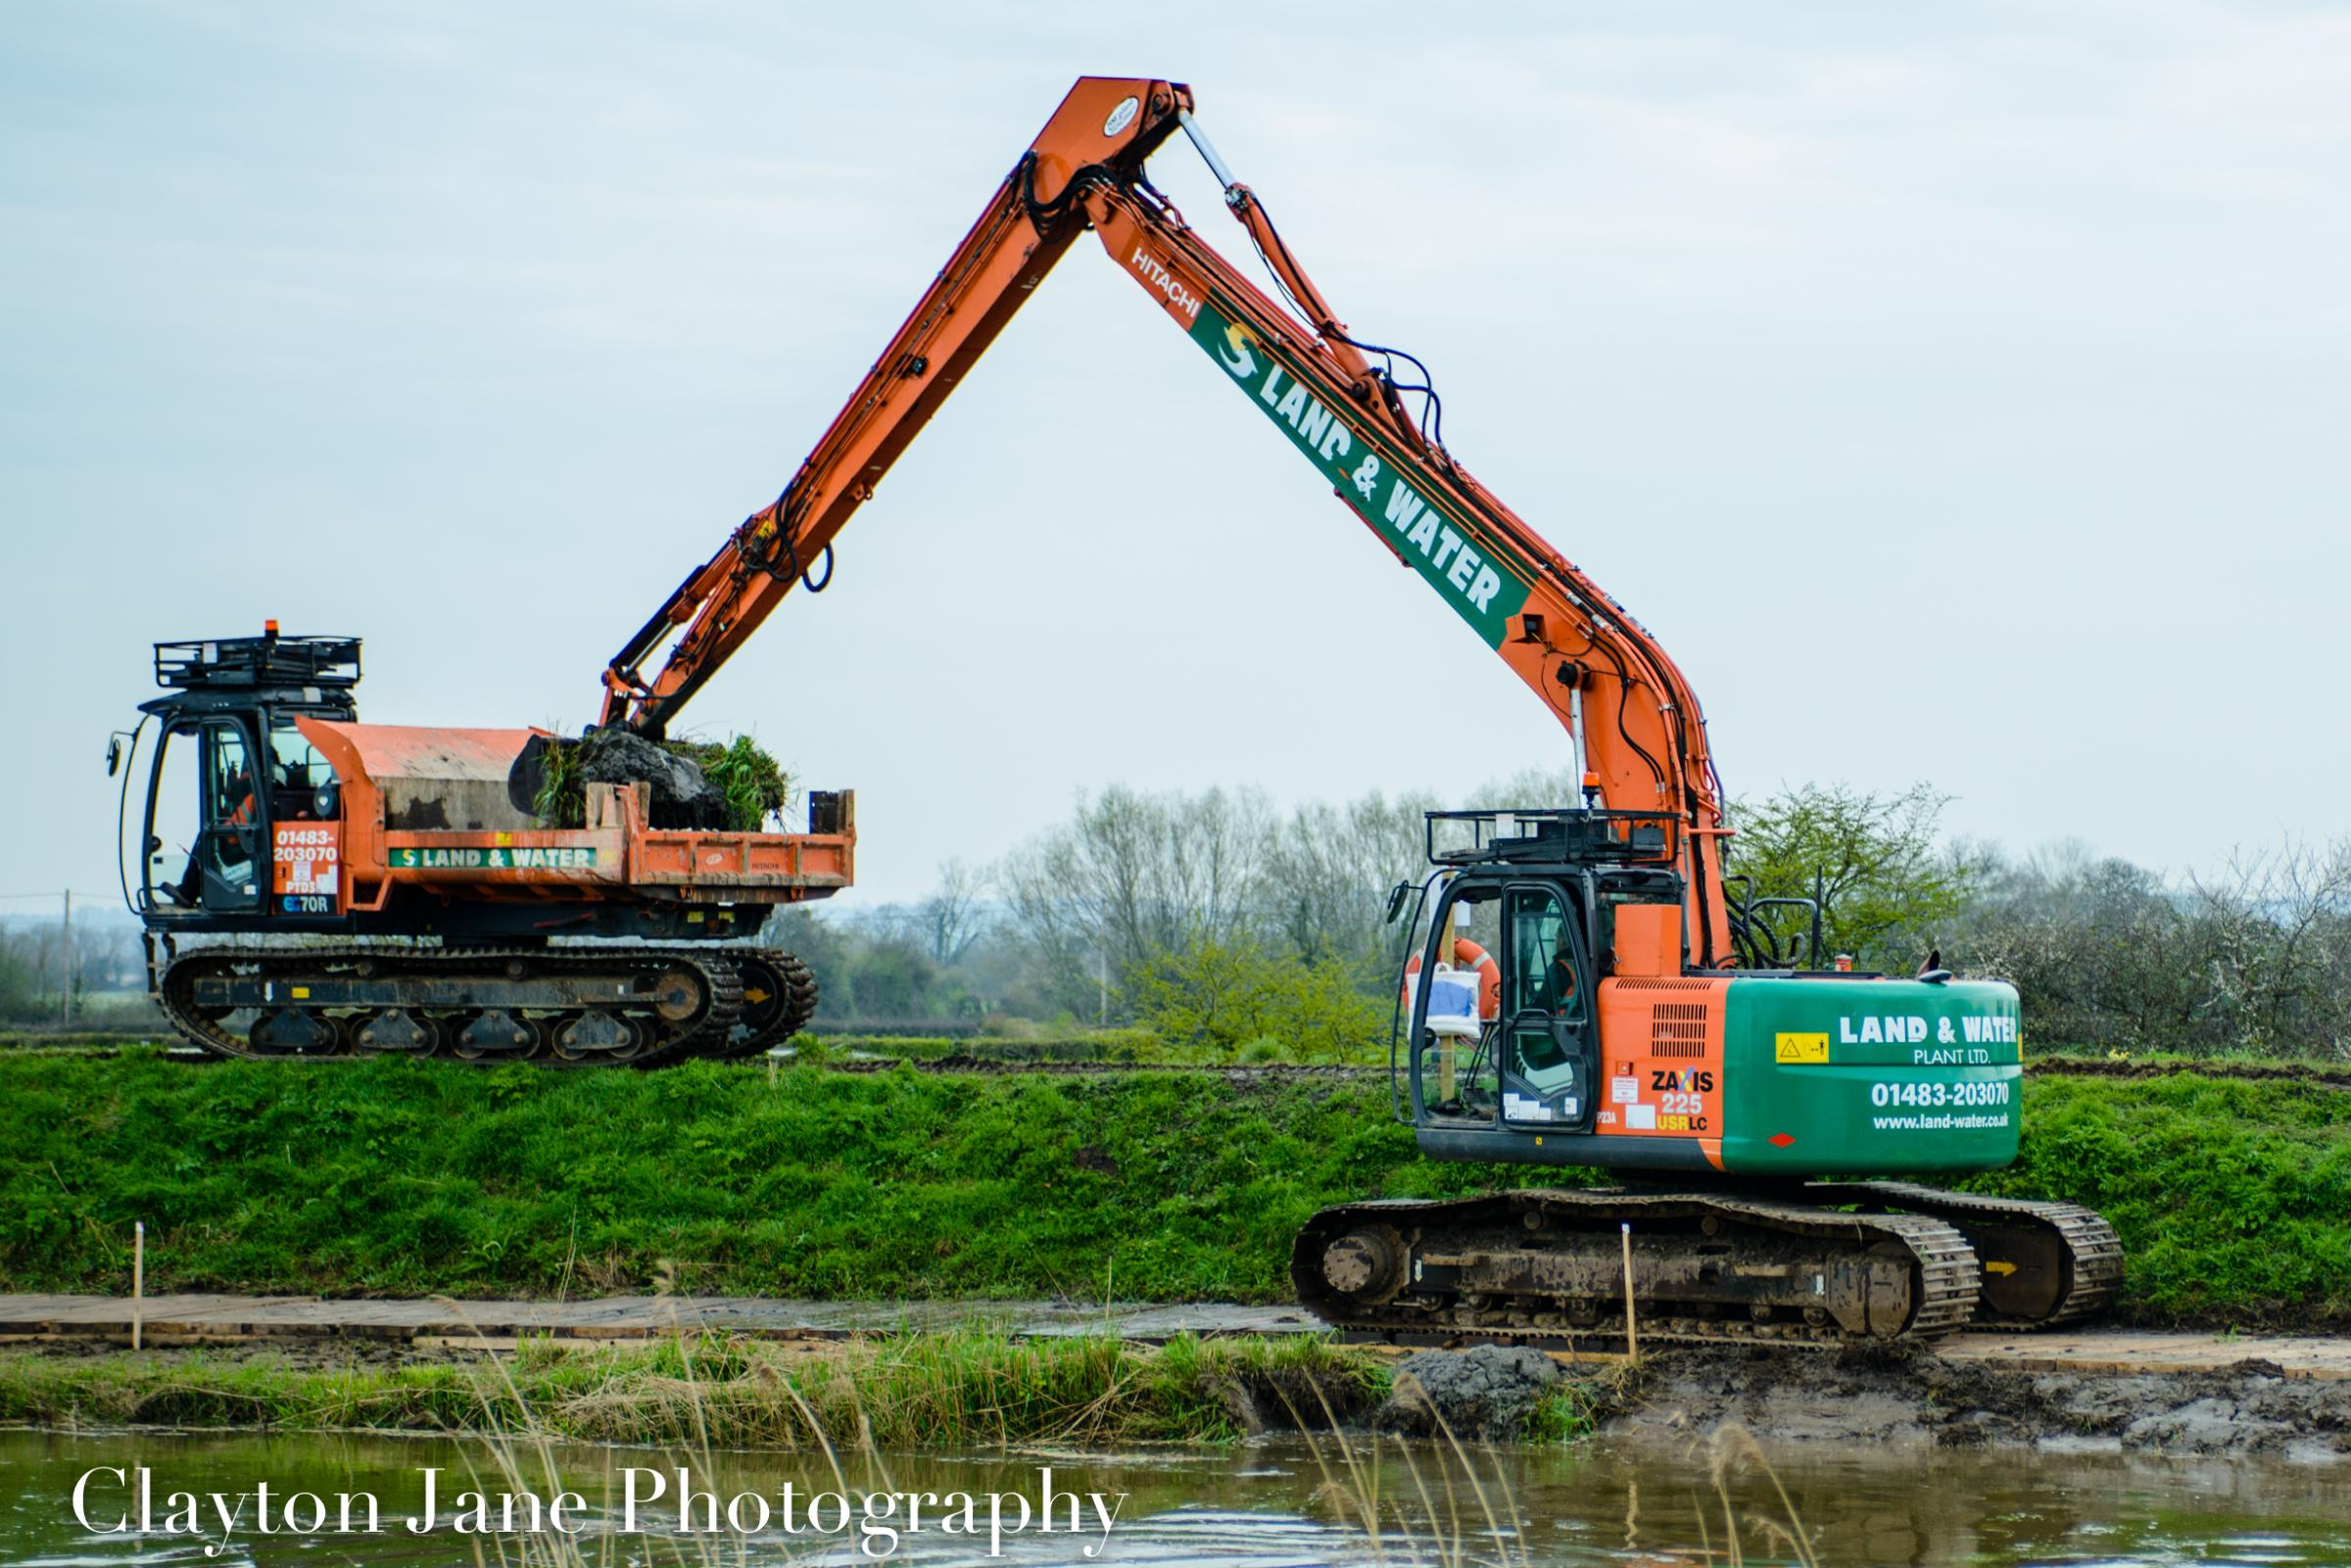 Dredging begins in Burrowbridge today